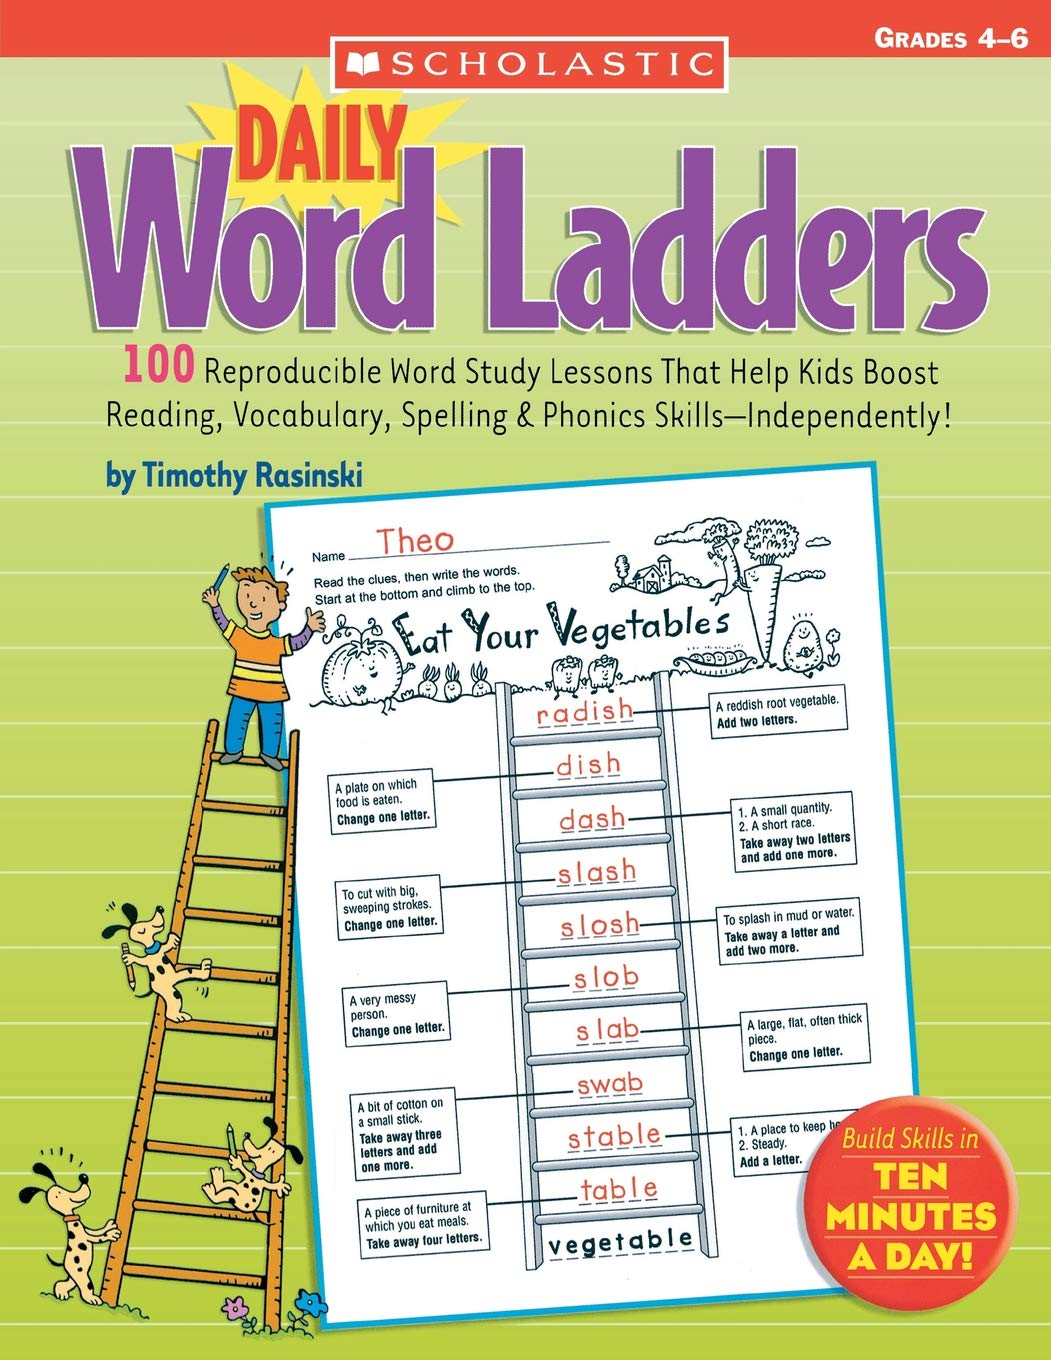 Daily Word Ladders Grades 46 100 Reproducible Word Study Lessons